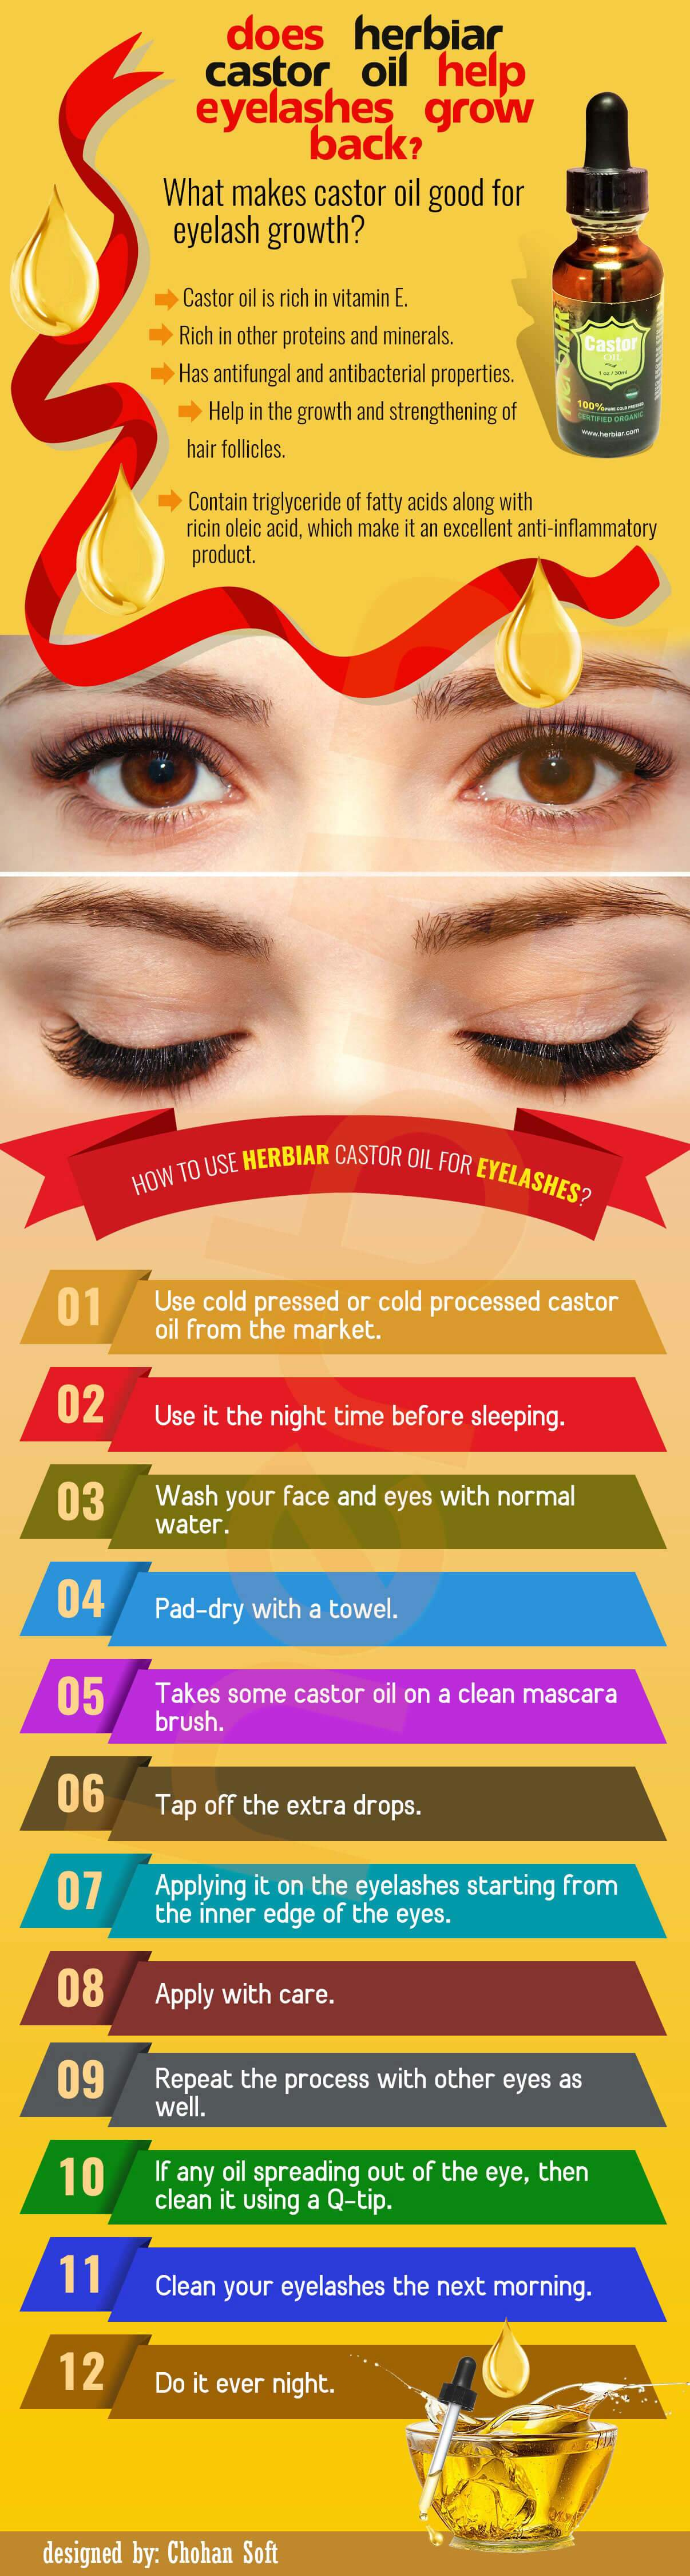 Castor Oil for Eyelashes Growth